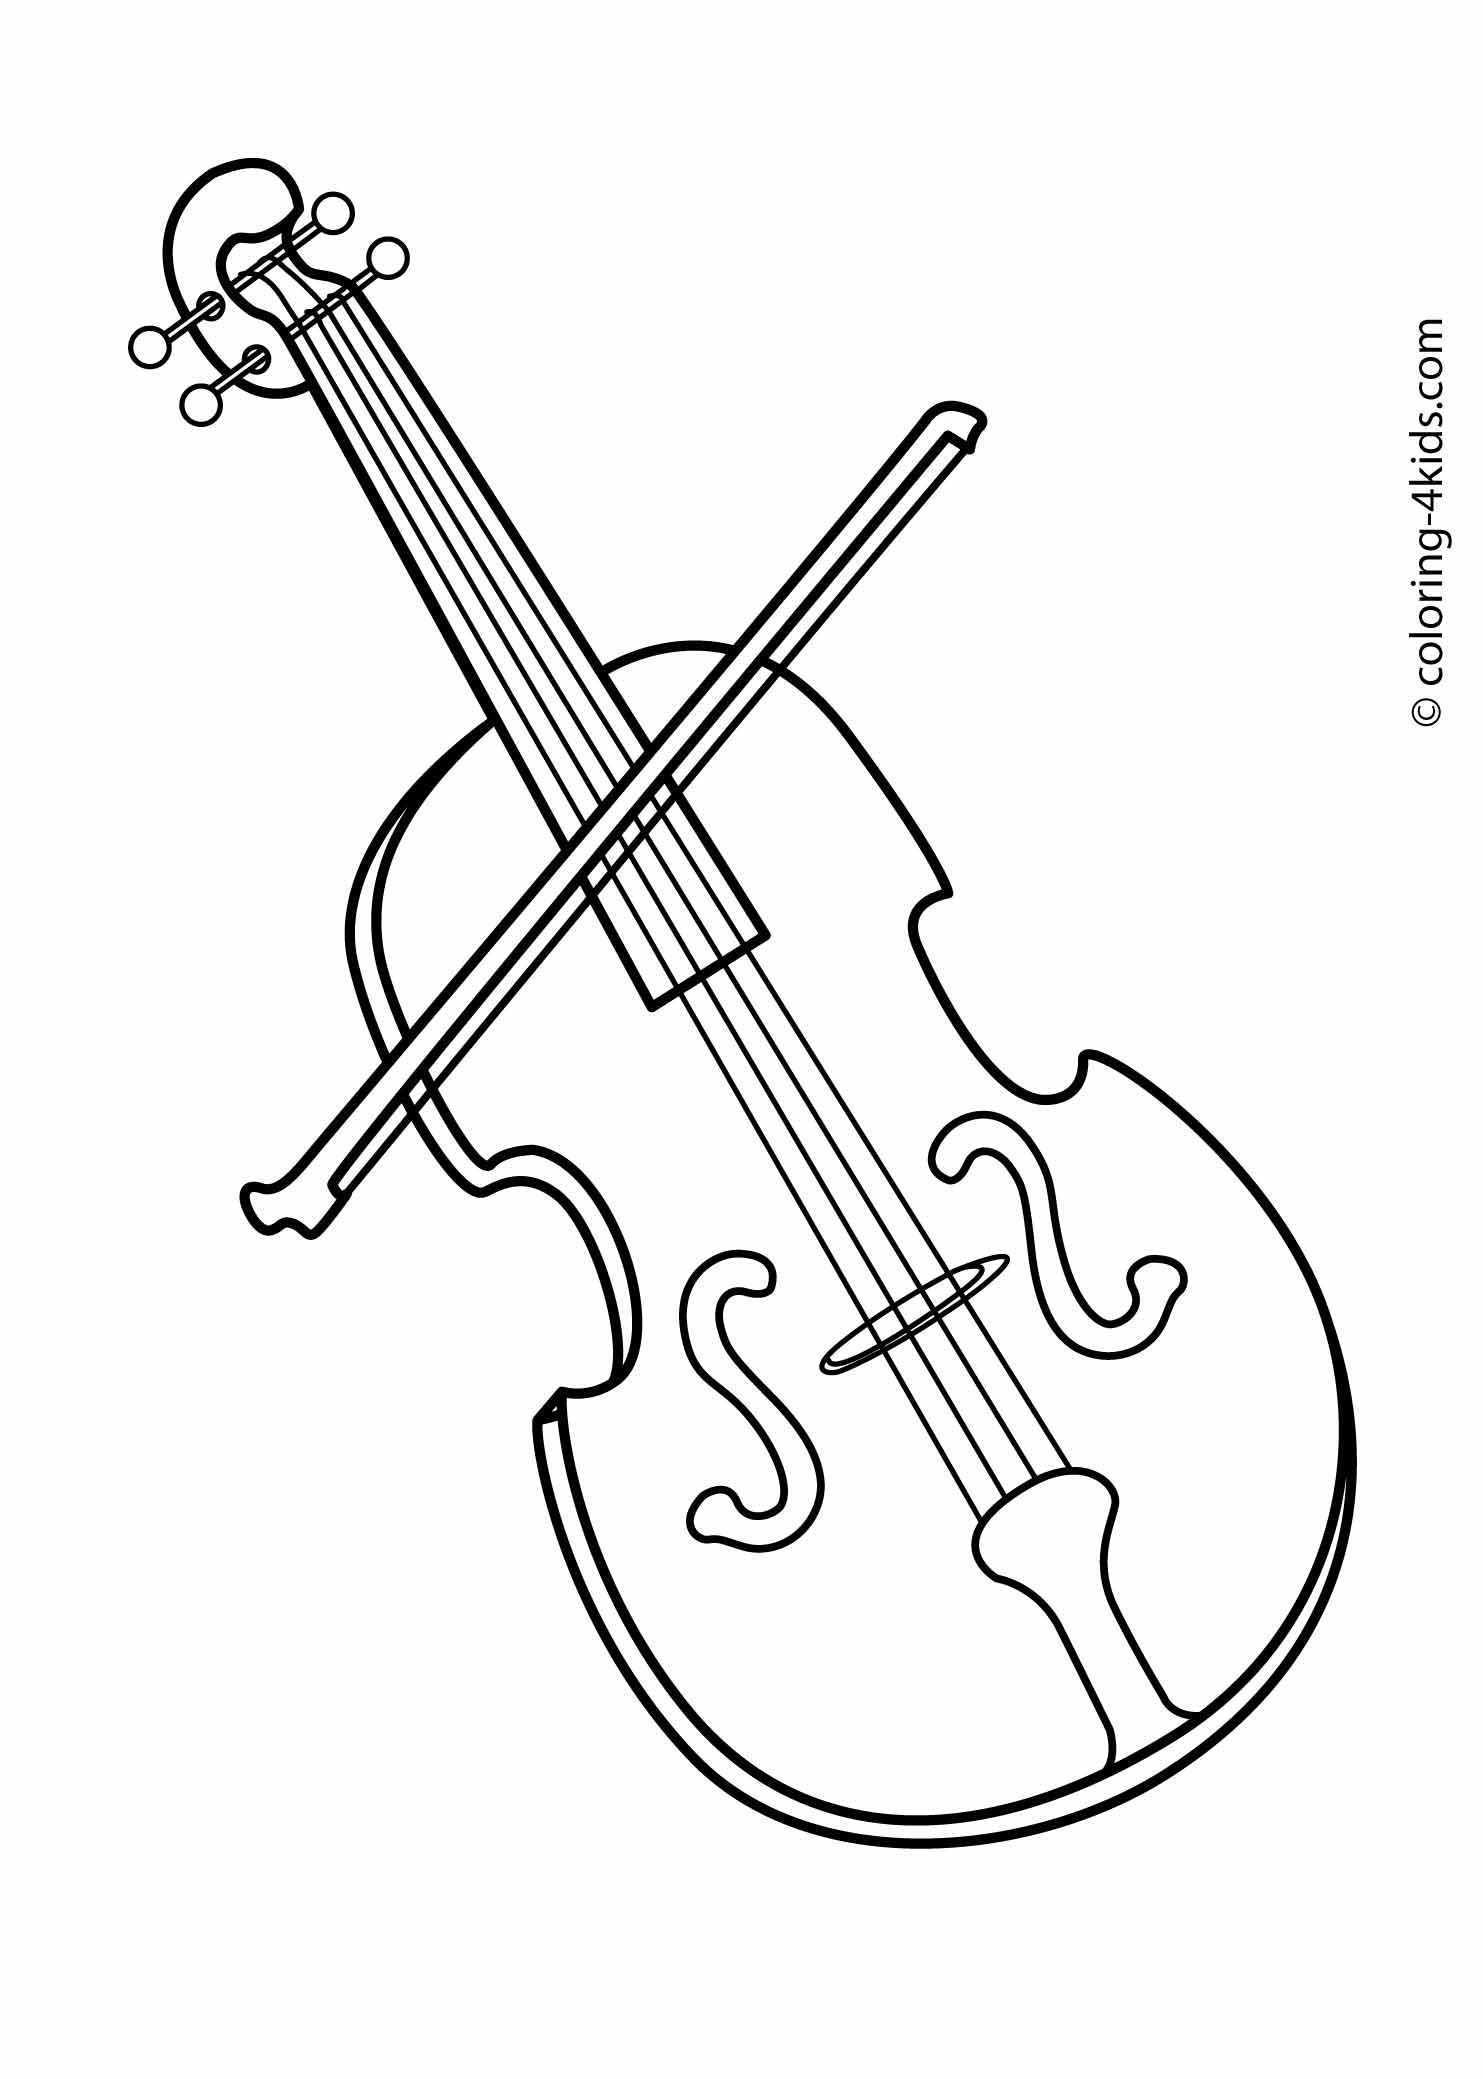 Trumpet - Free Coloring pages of Musical Instruments | Kids Music ...